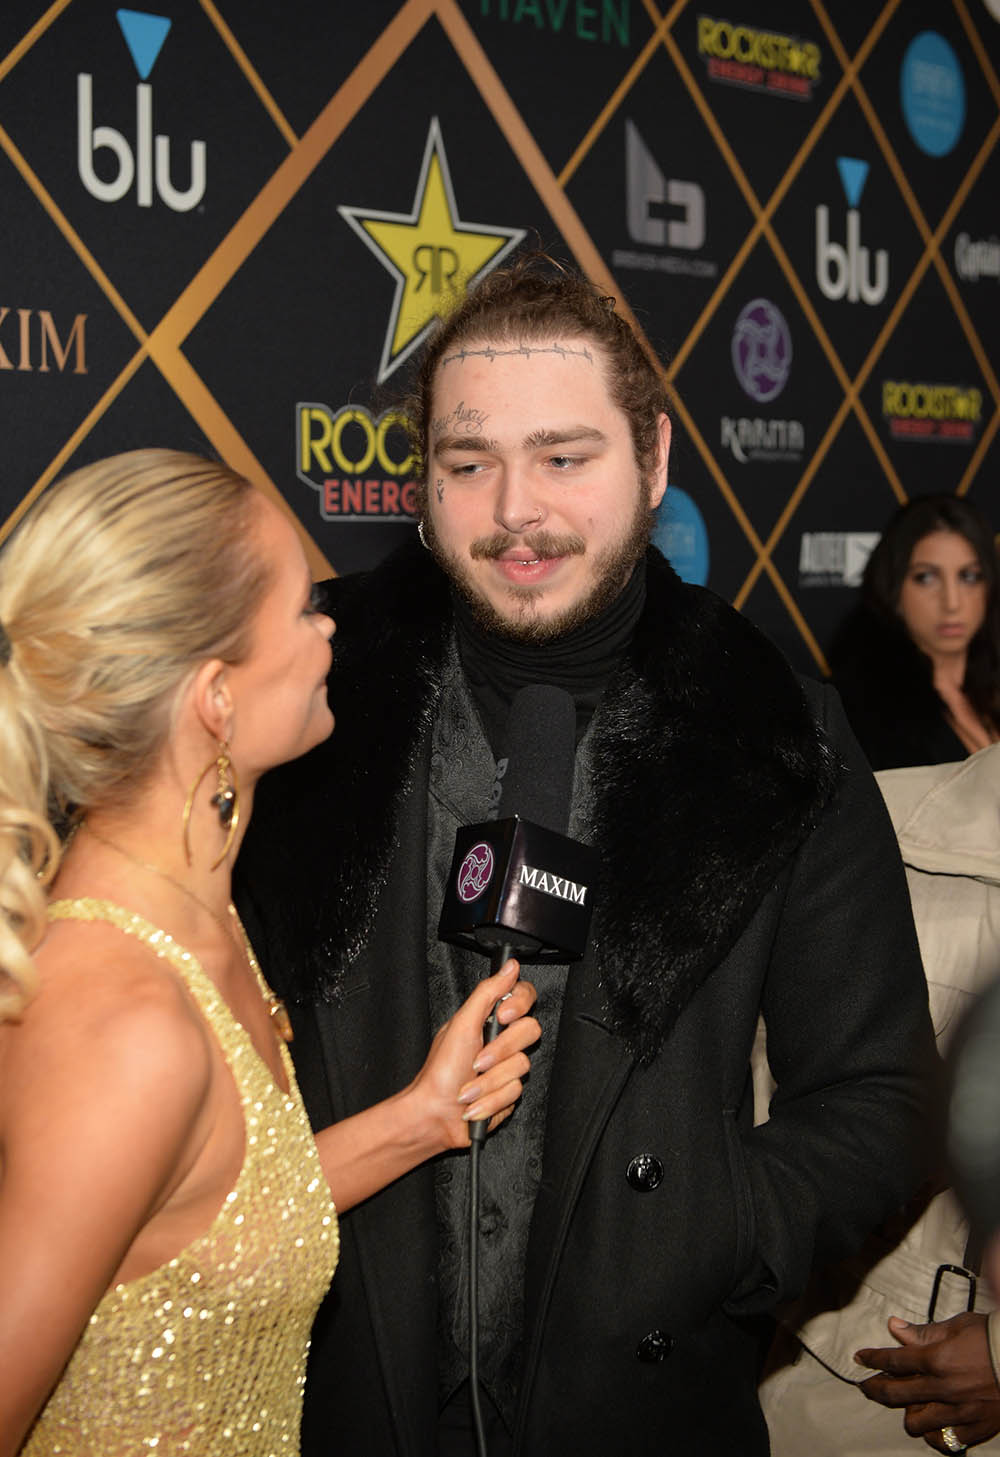 Post Malone arrives at the 2018 Maxim Super Bowl Party.